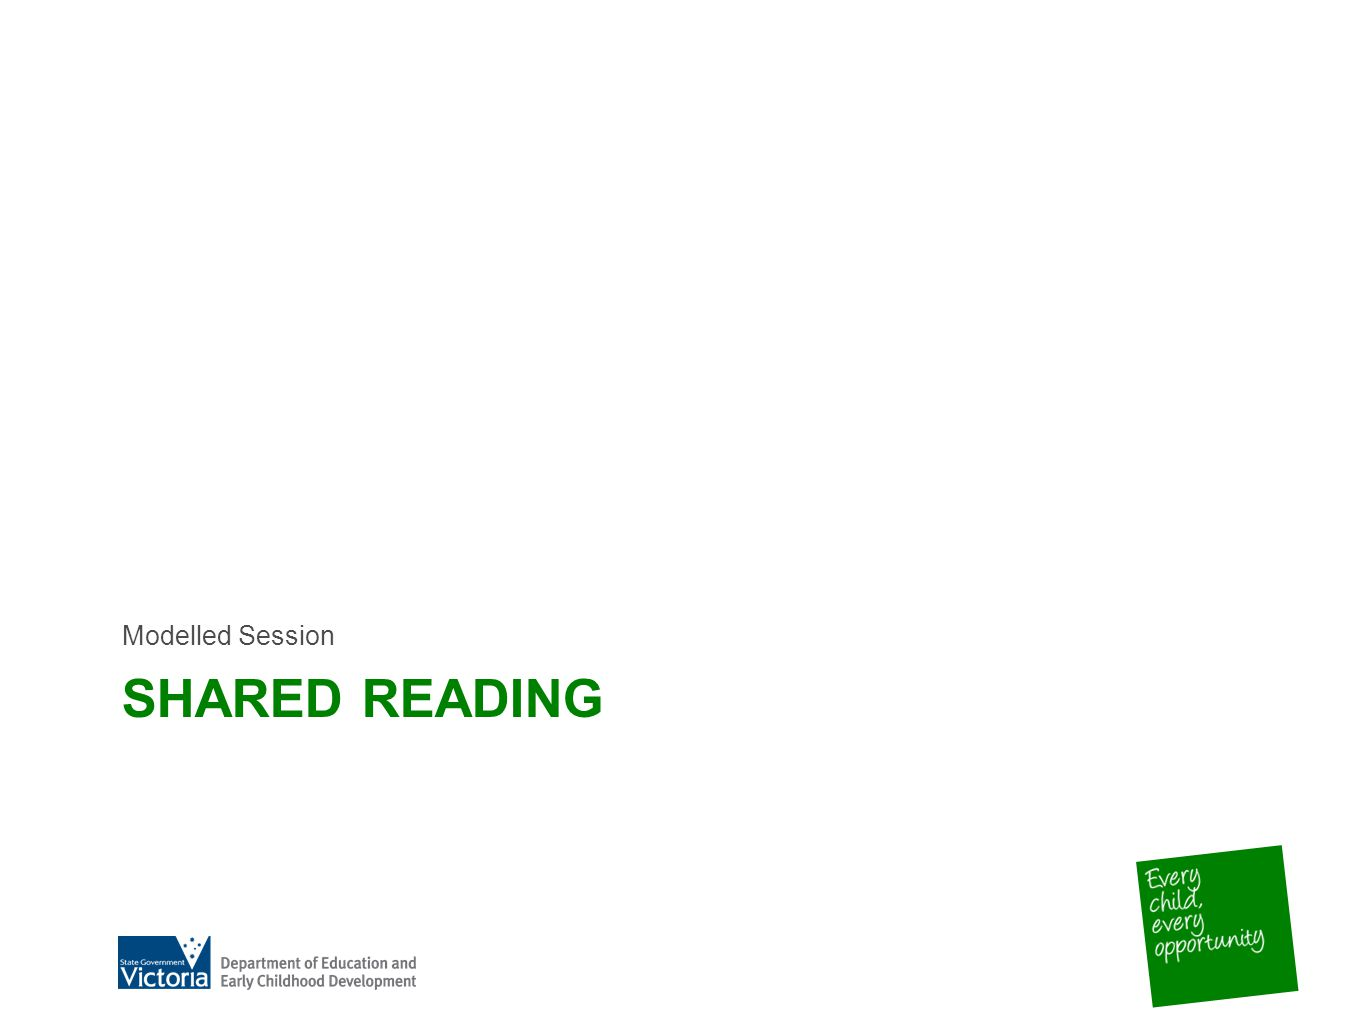 SHARED READING Modelled Session